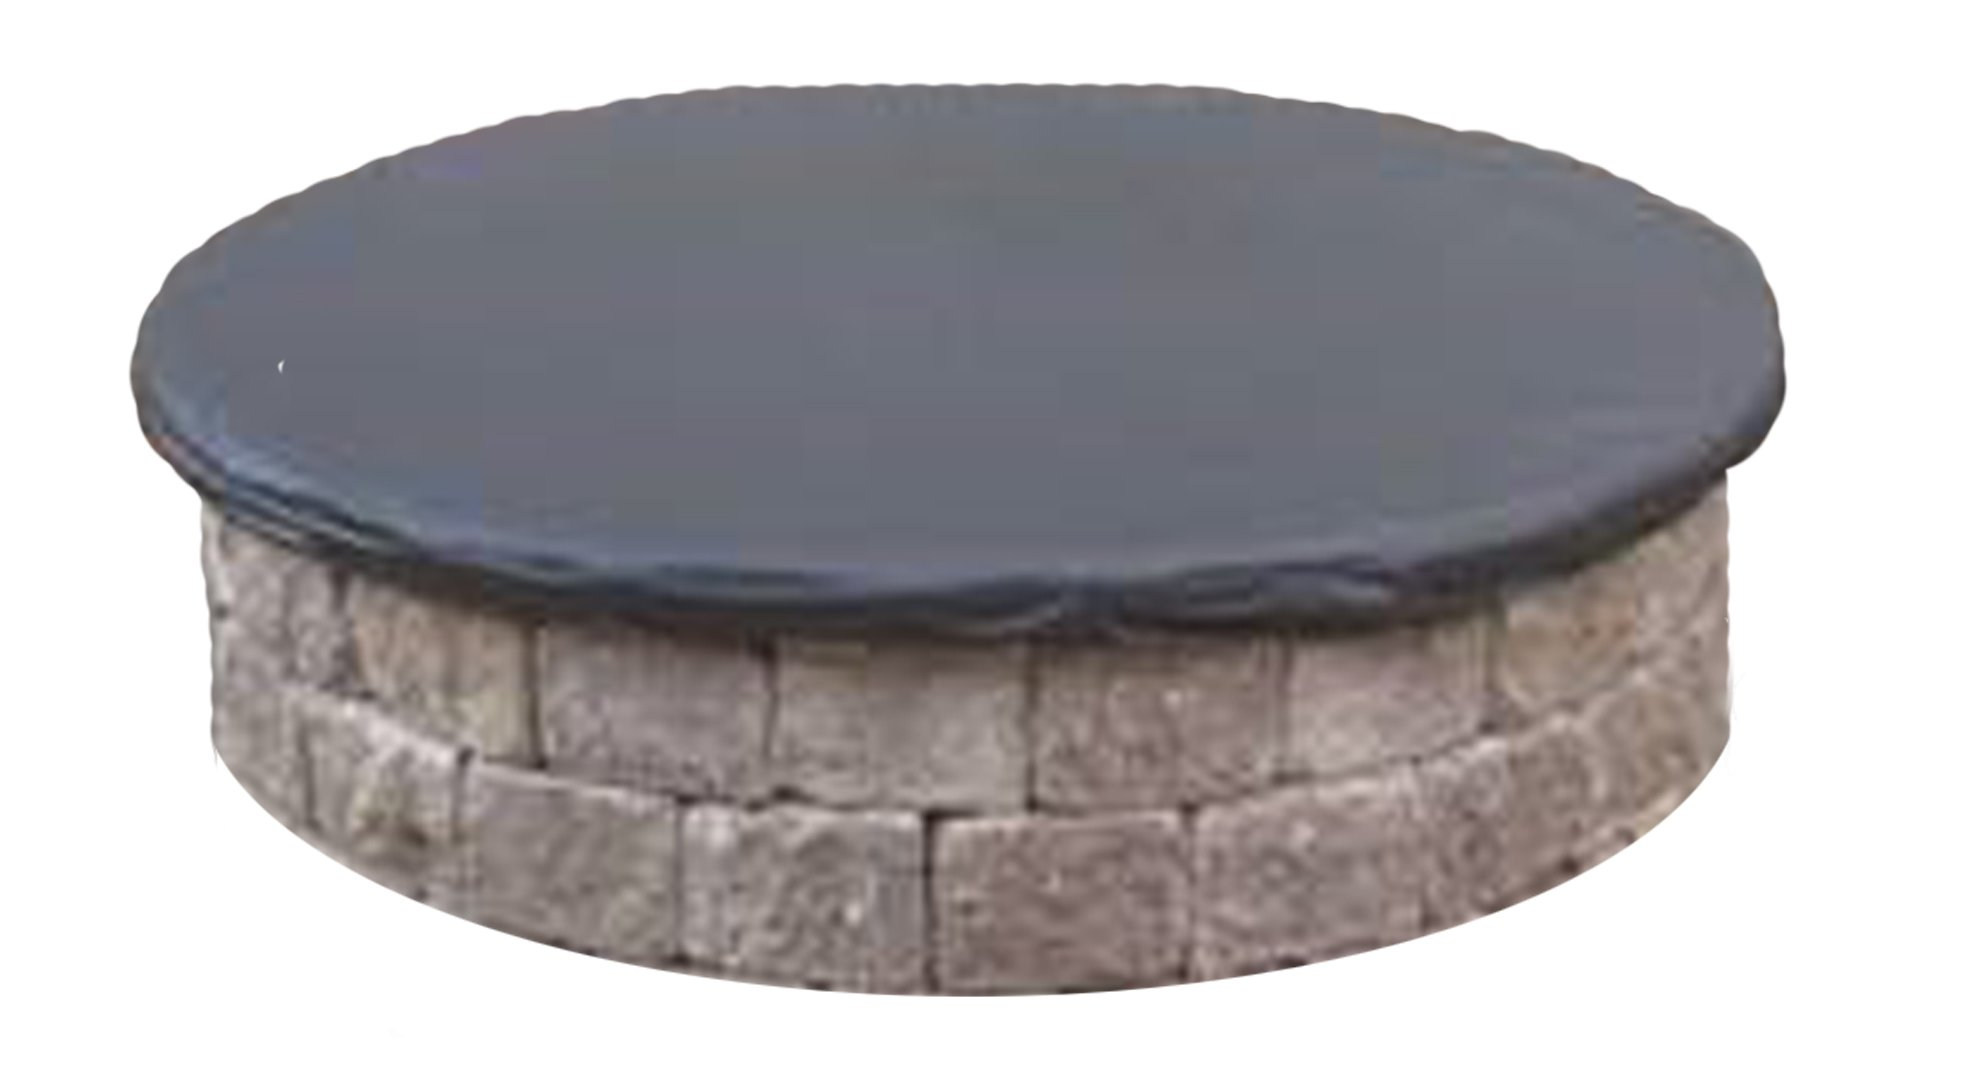 Equip, Inc. Custom Protective Cover for Round Fire Pit. Heavy Duty UV/Mold/Mildew/Water-Resistant Outdoor Cover by Equip, Inc.